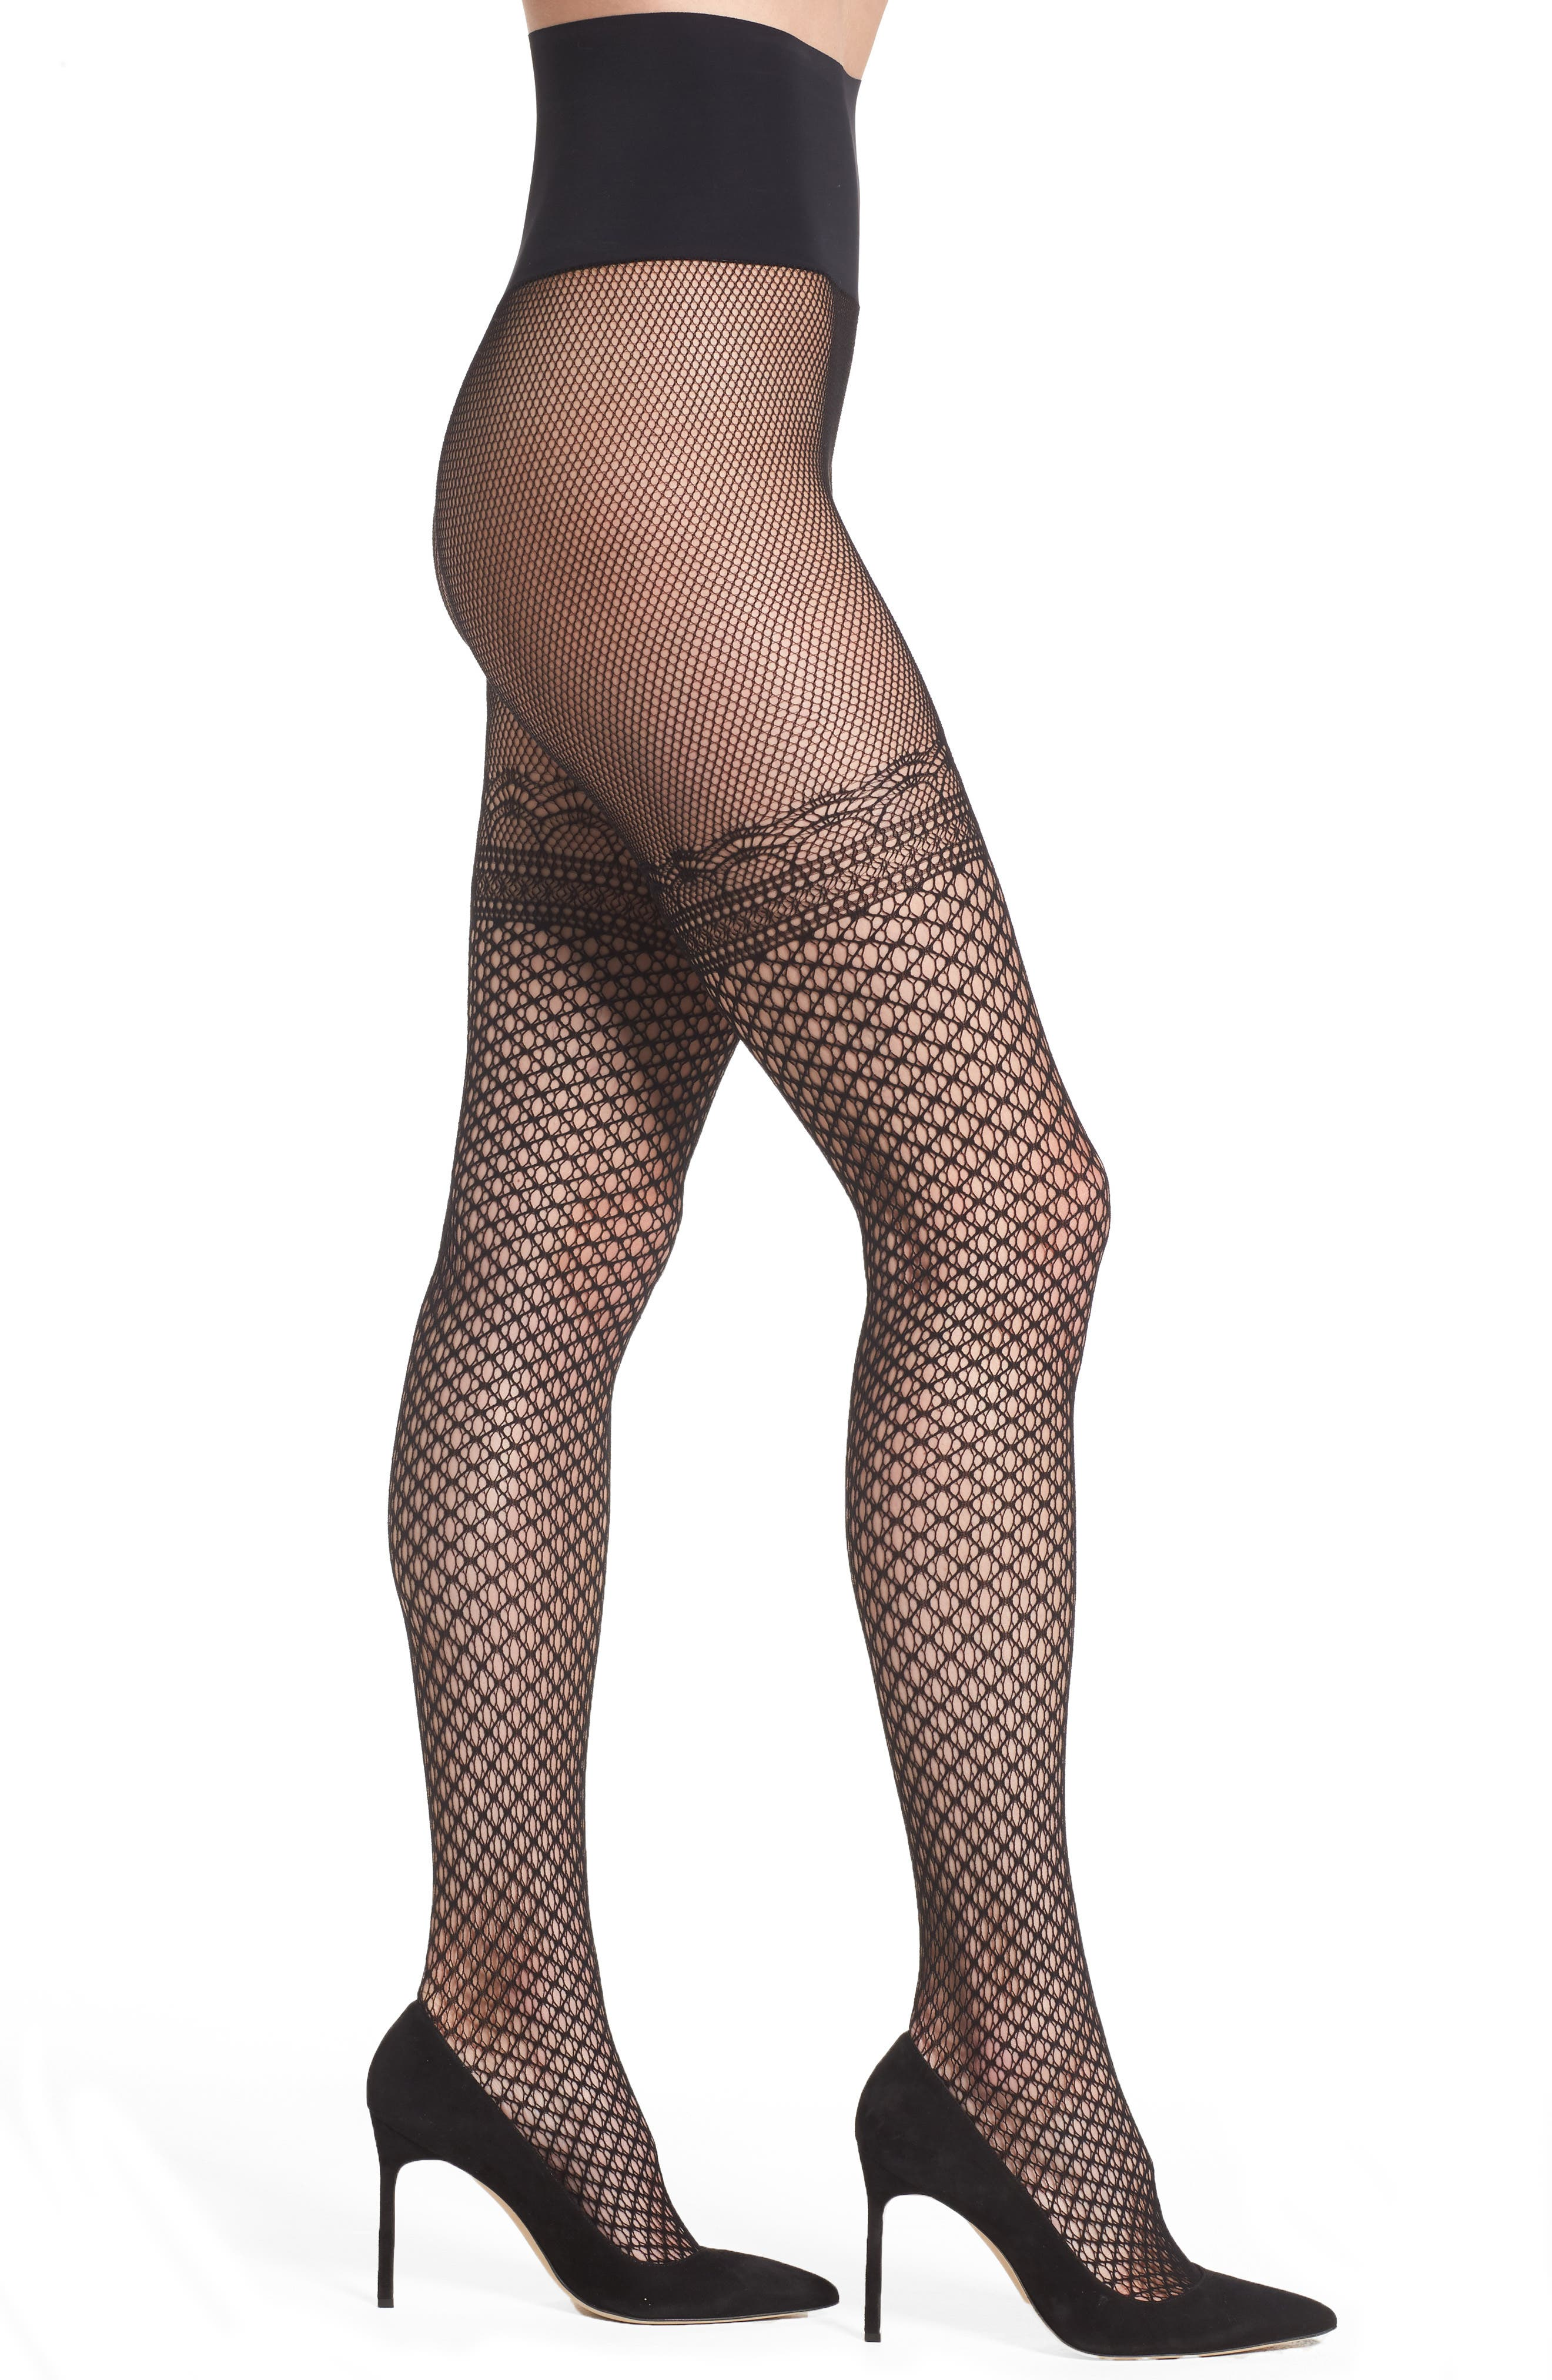 Deco Fishnet Tights,                         Main,                         color, 001